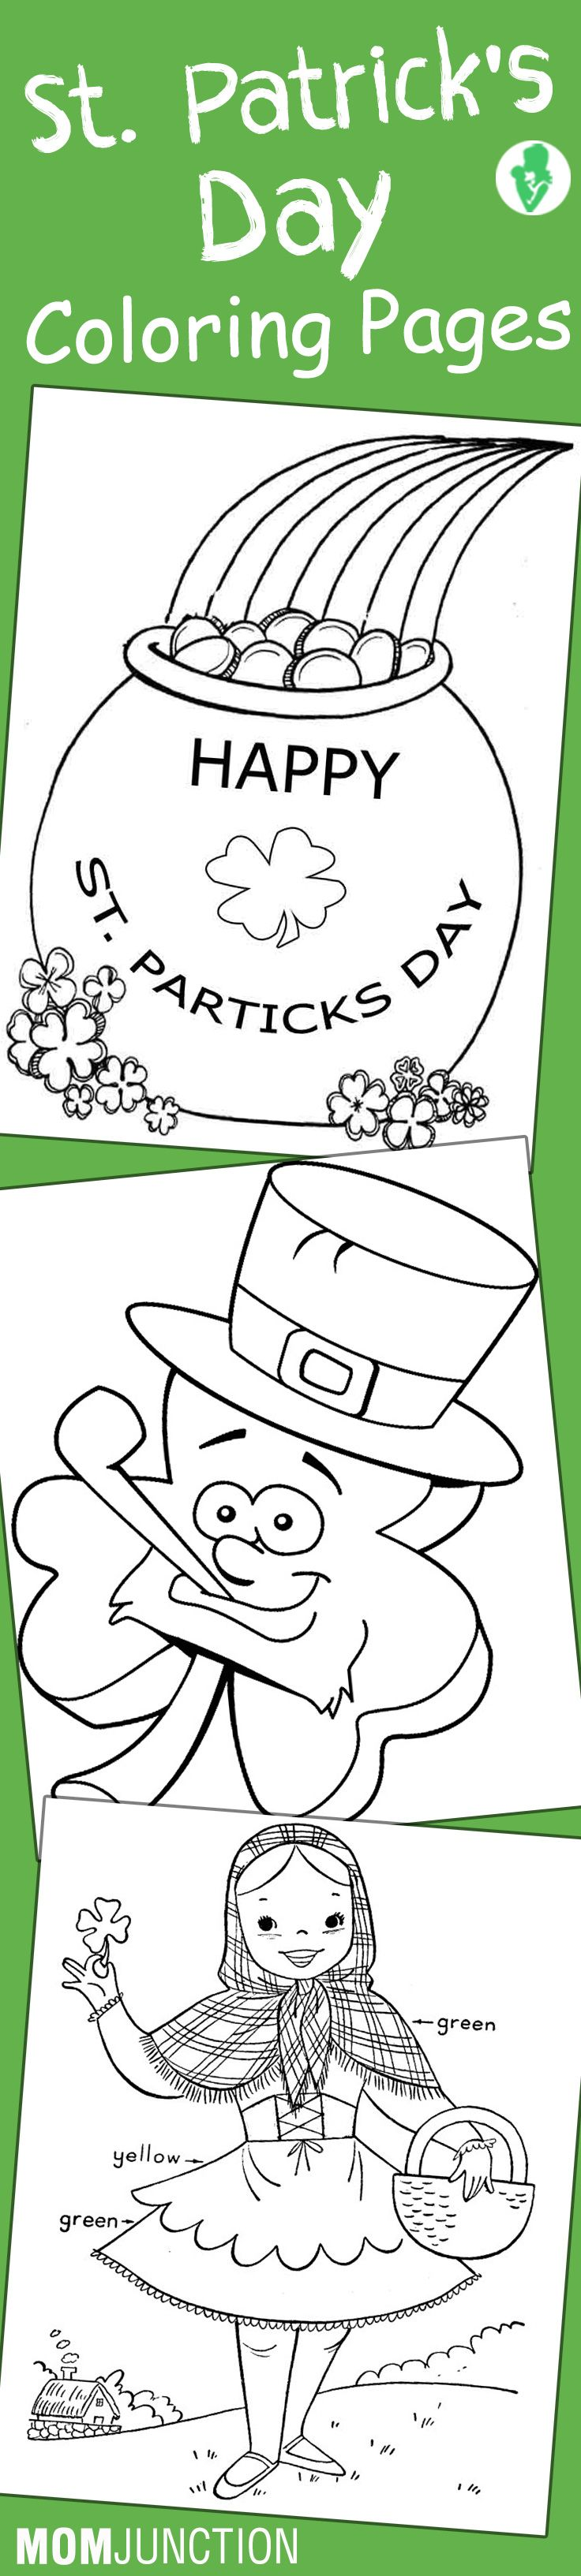 Co coloring book page leprechaun - 10 Best St Patrick S Day Coloring Pages For Your Little Ones